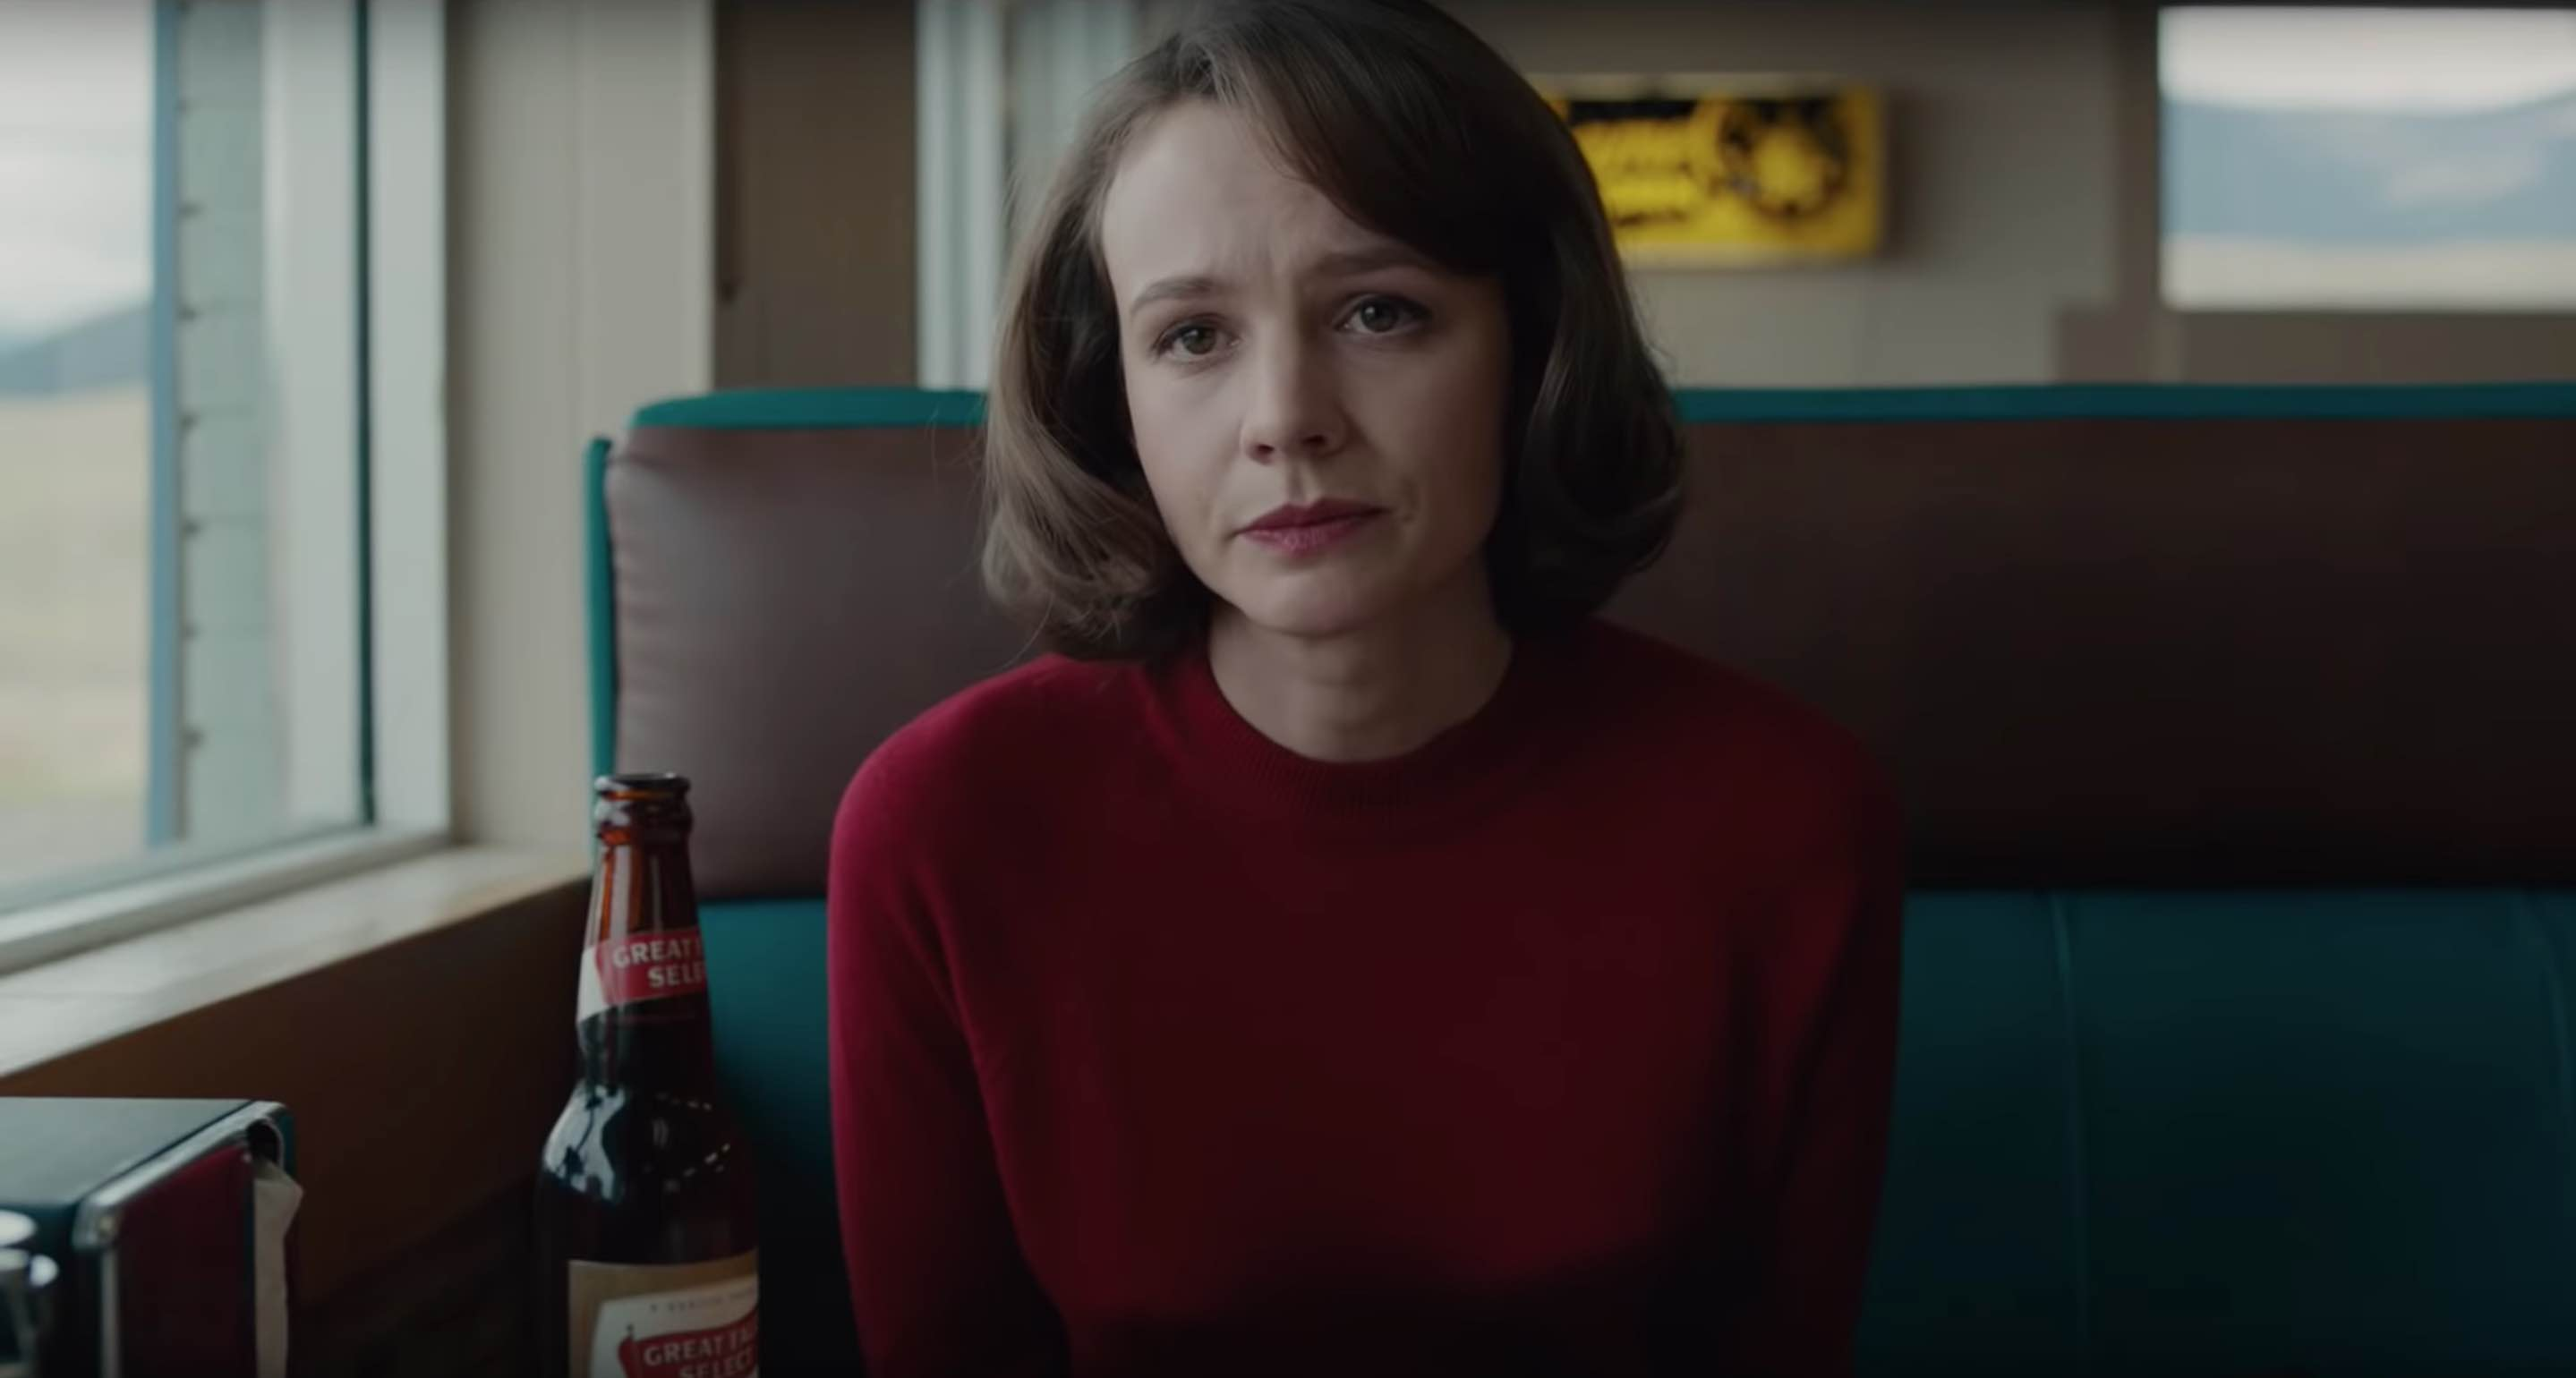 CAREY MULLIGAN VE JAKE GYLLENHAAL'LI WILDLFE'TAN YENİ FRAGMAN